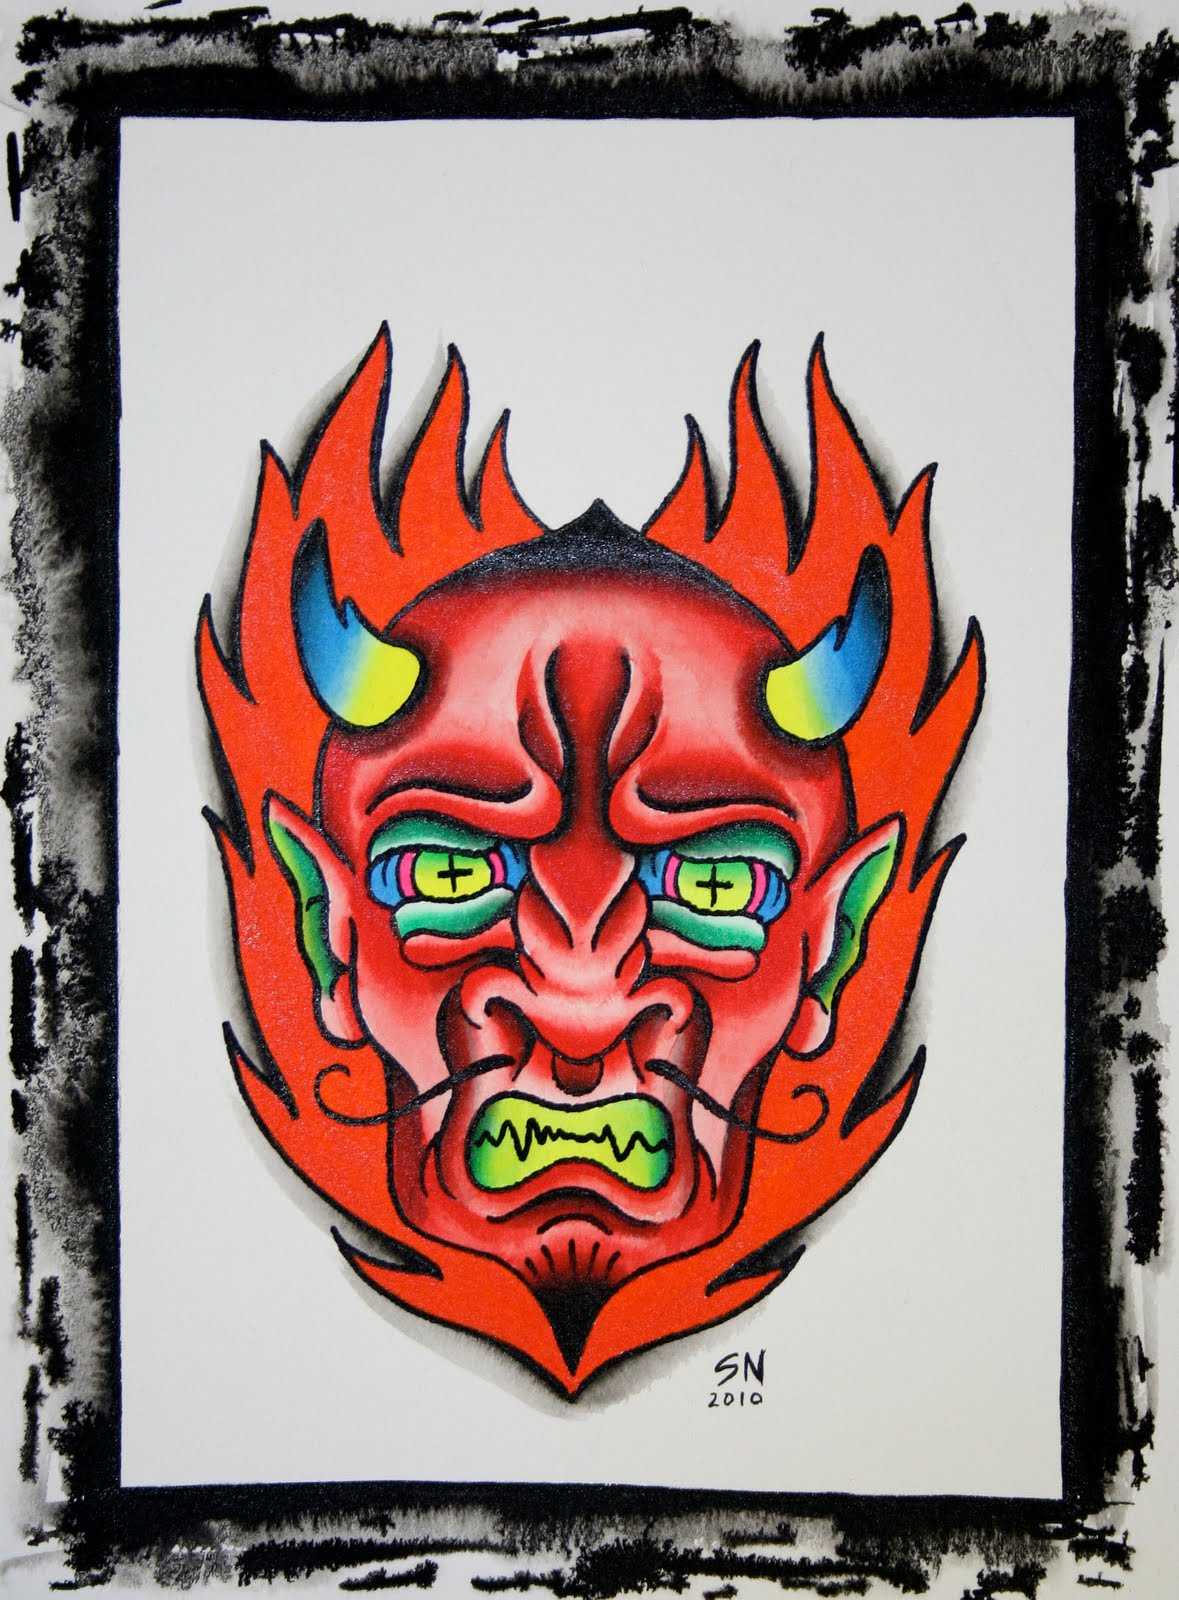 NUTT BLOG: Devil head